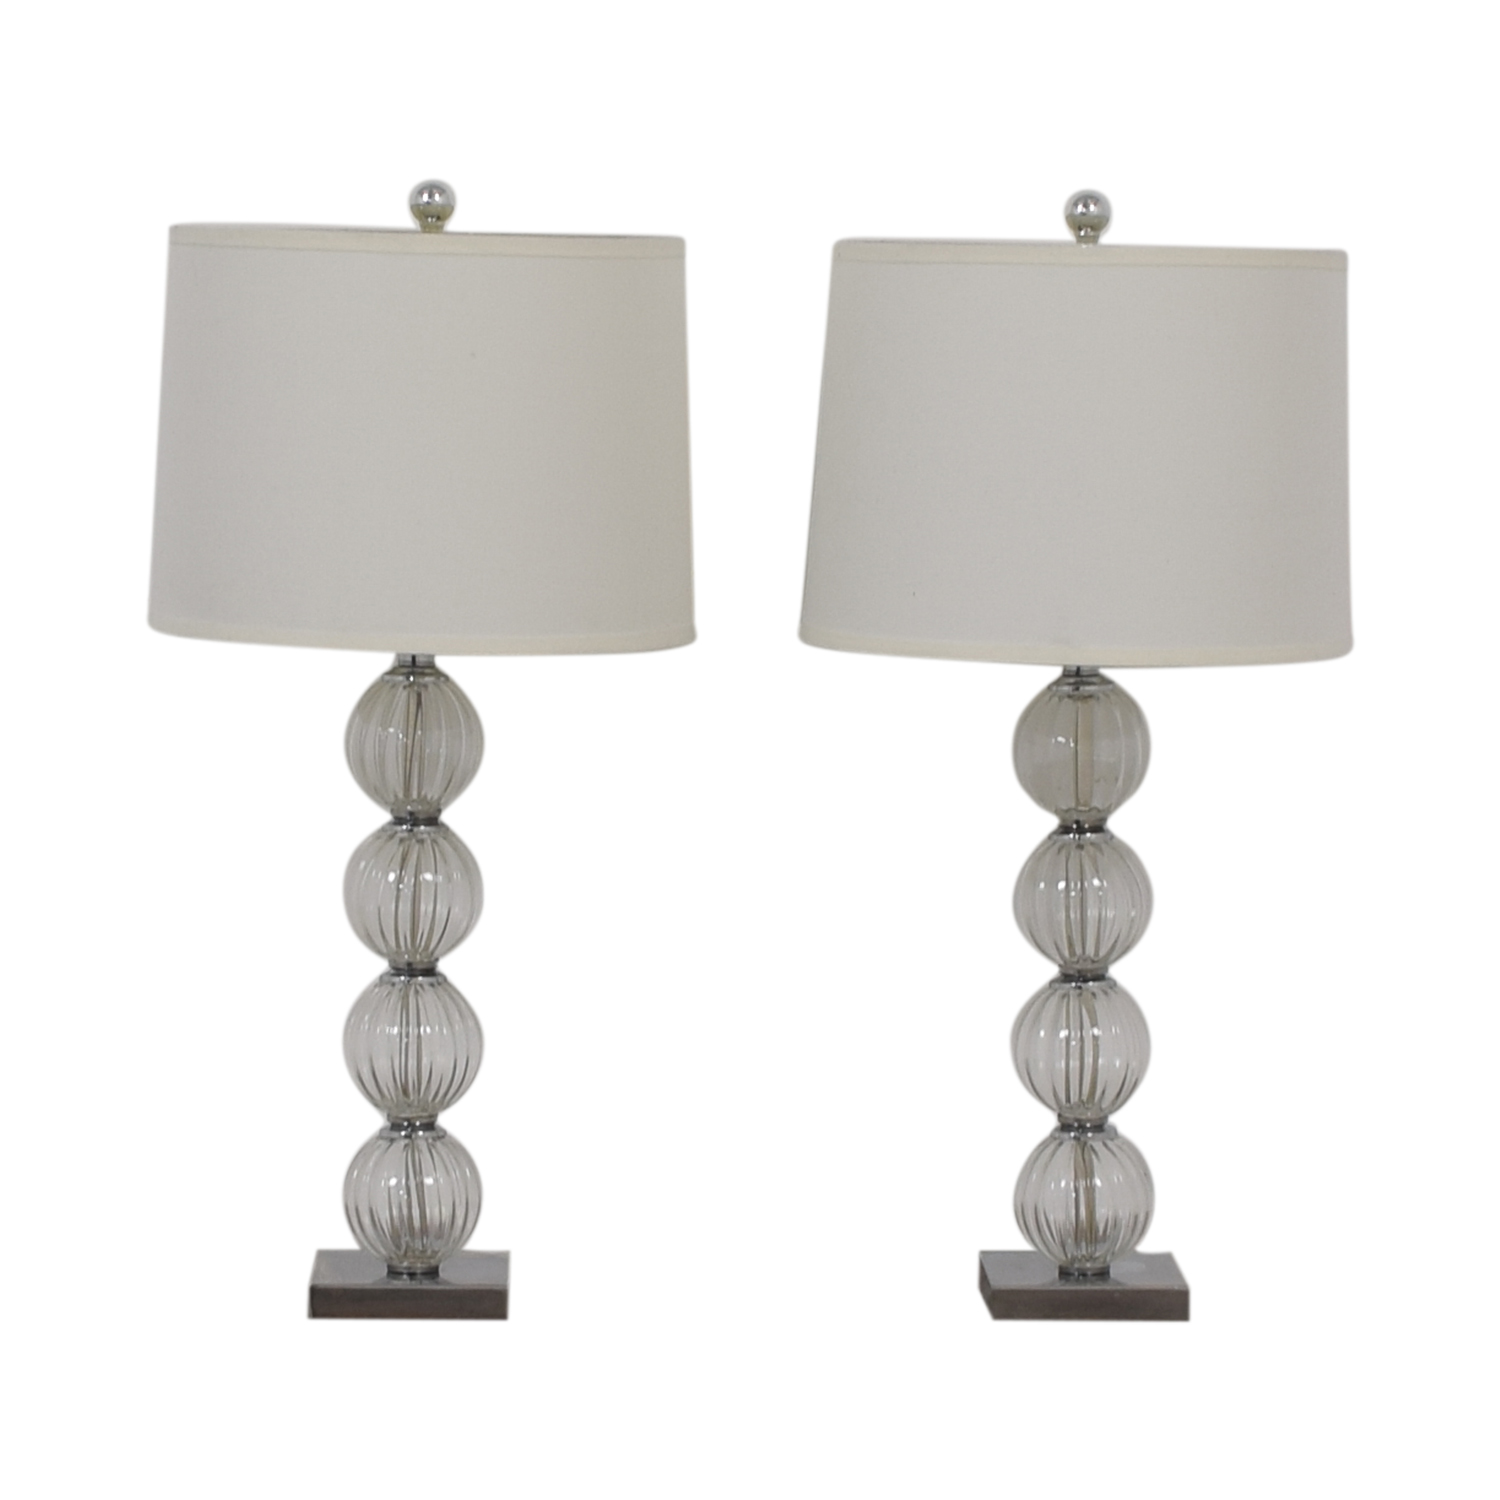 Wayfair Crystal Table Lamps / Lamps